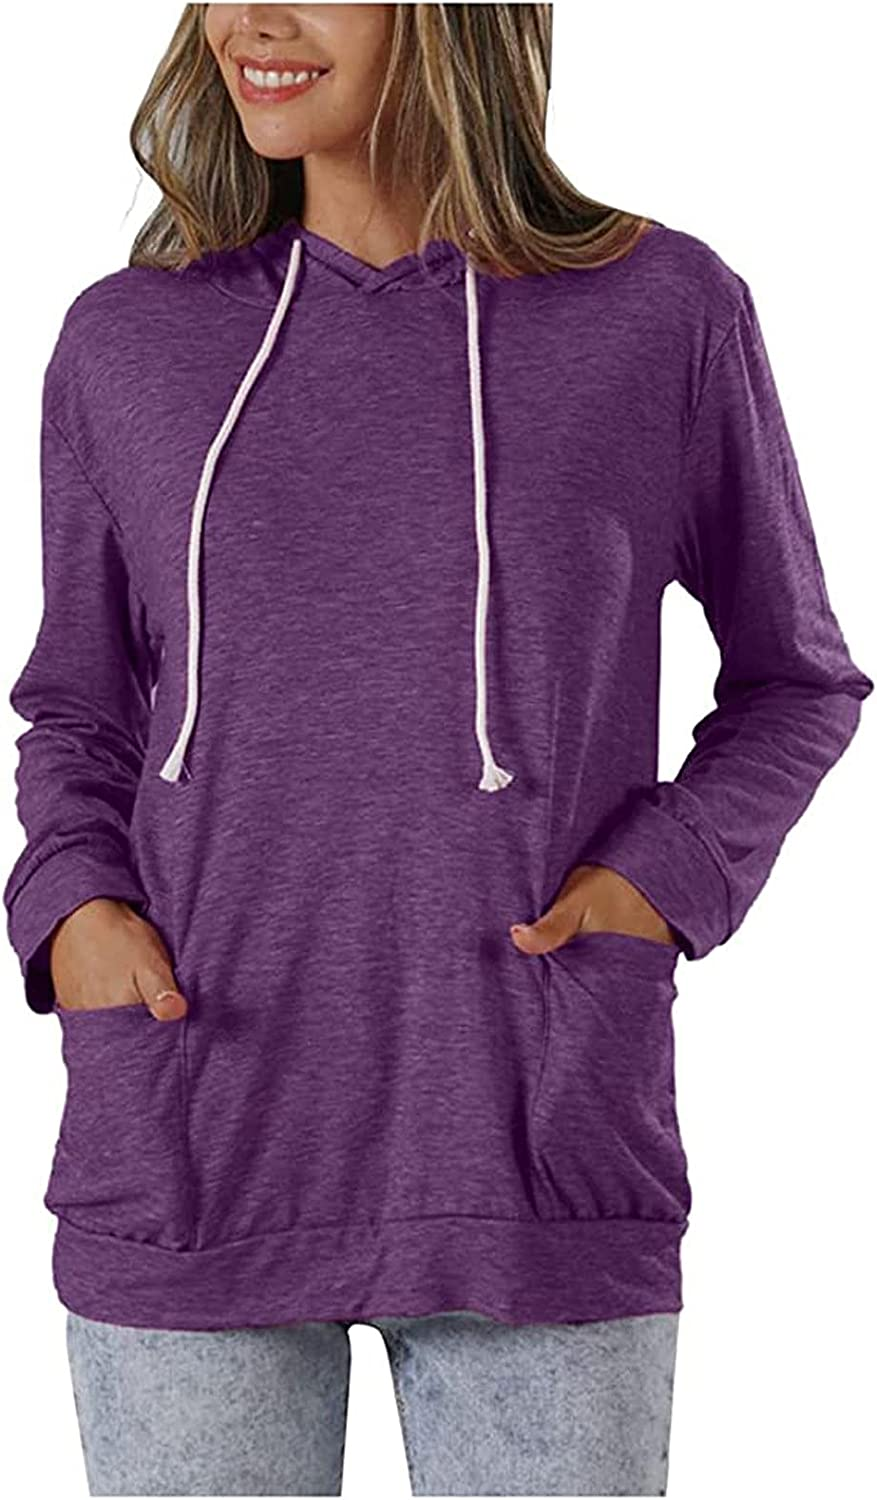 Fashion Hooded Pullover Tops for Women's Solid Color Long Sleeve Comfortable Breathable Crewneck Sweatshirt Blouse